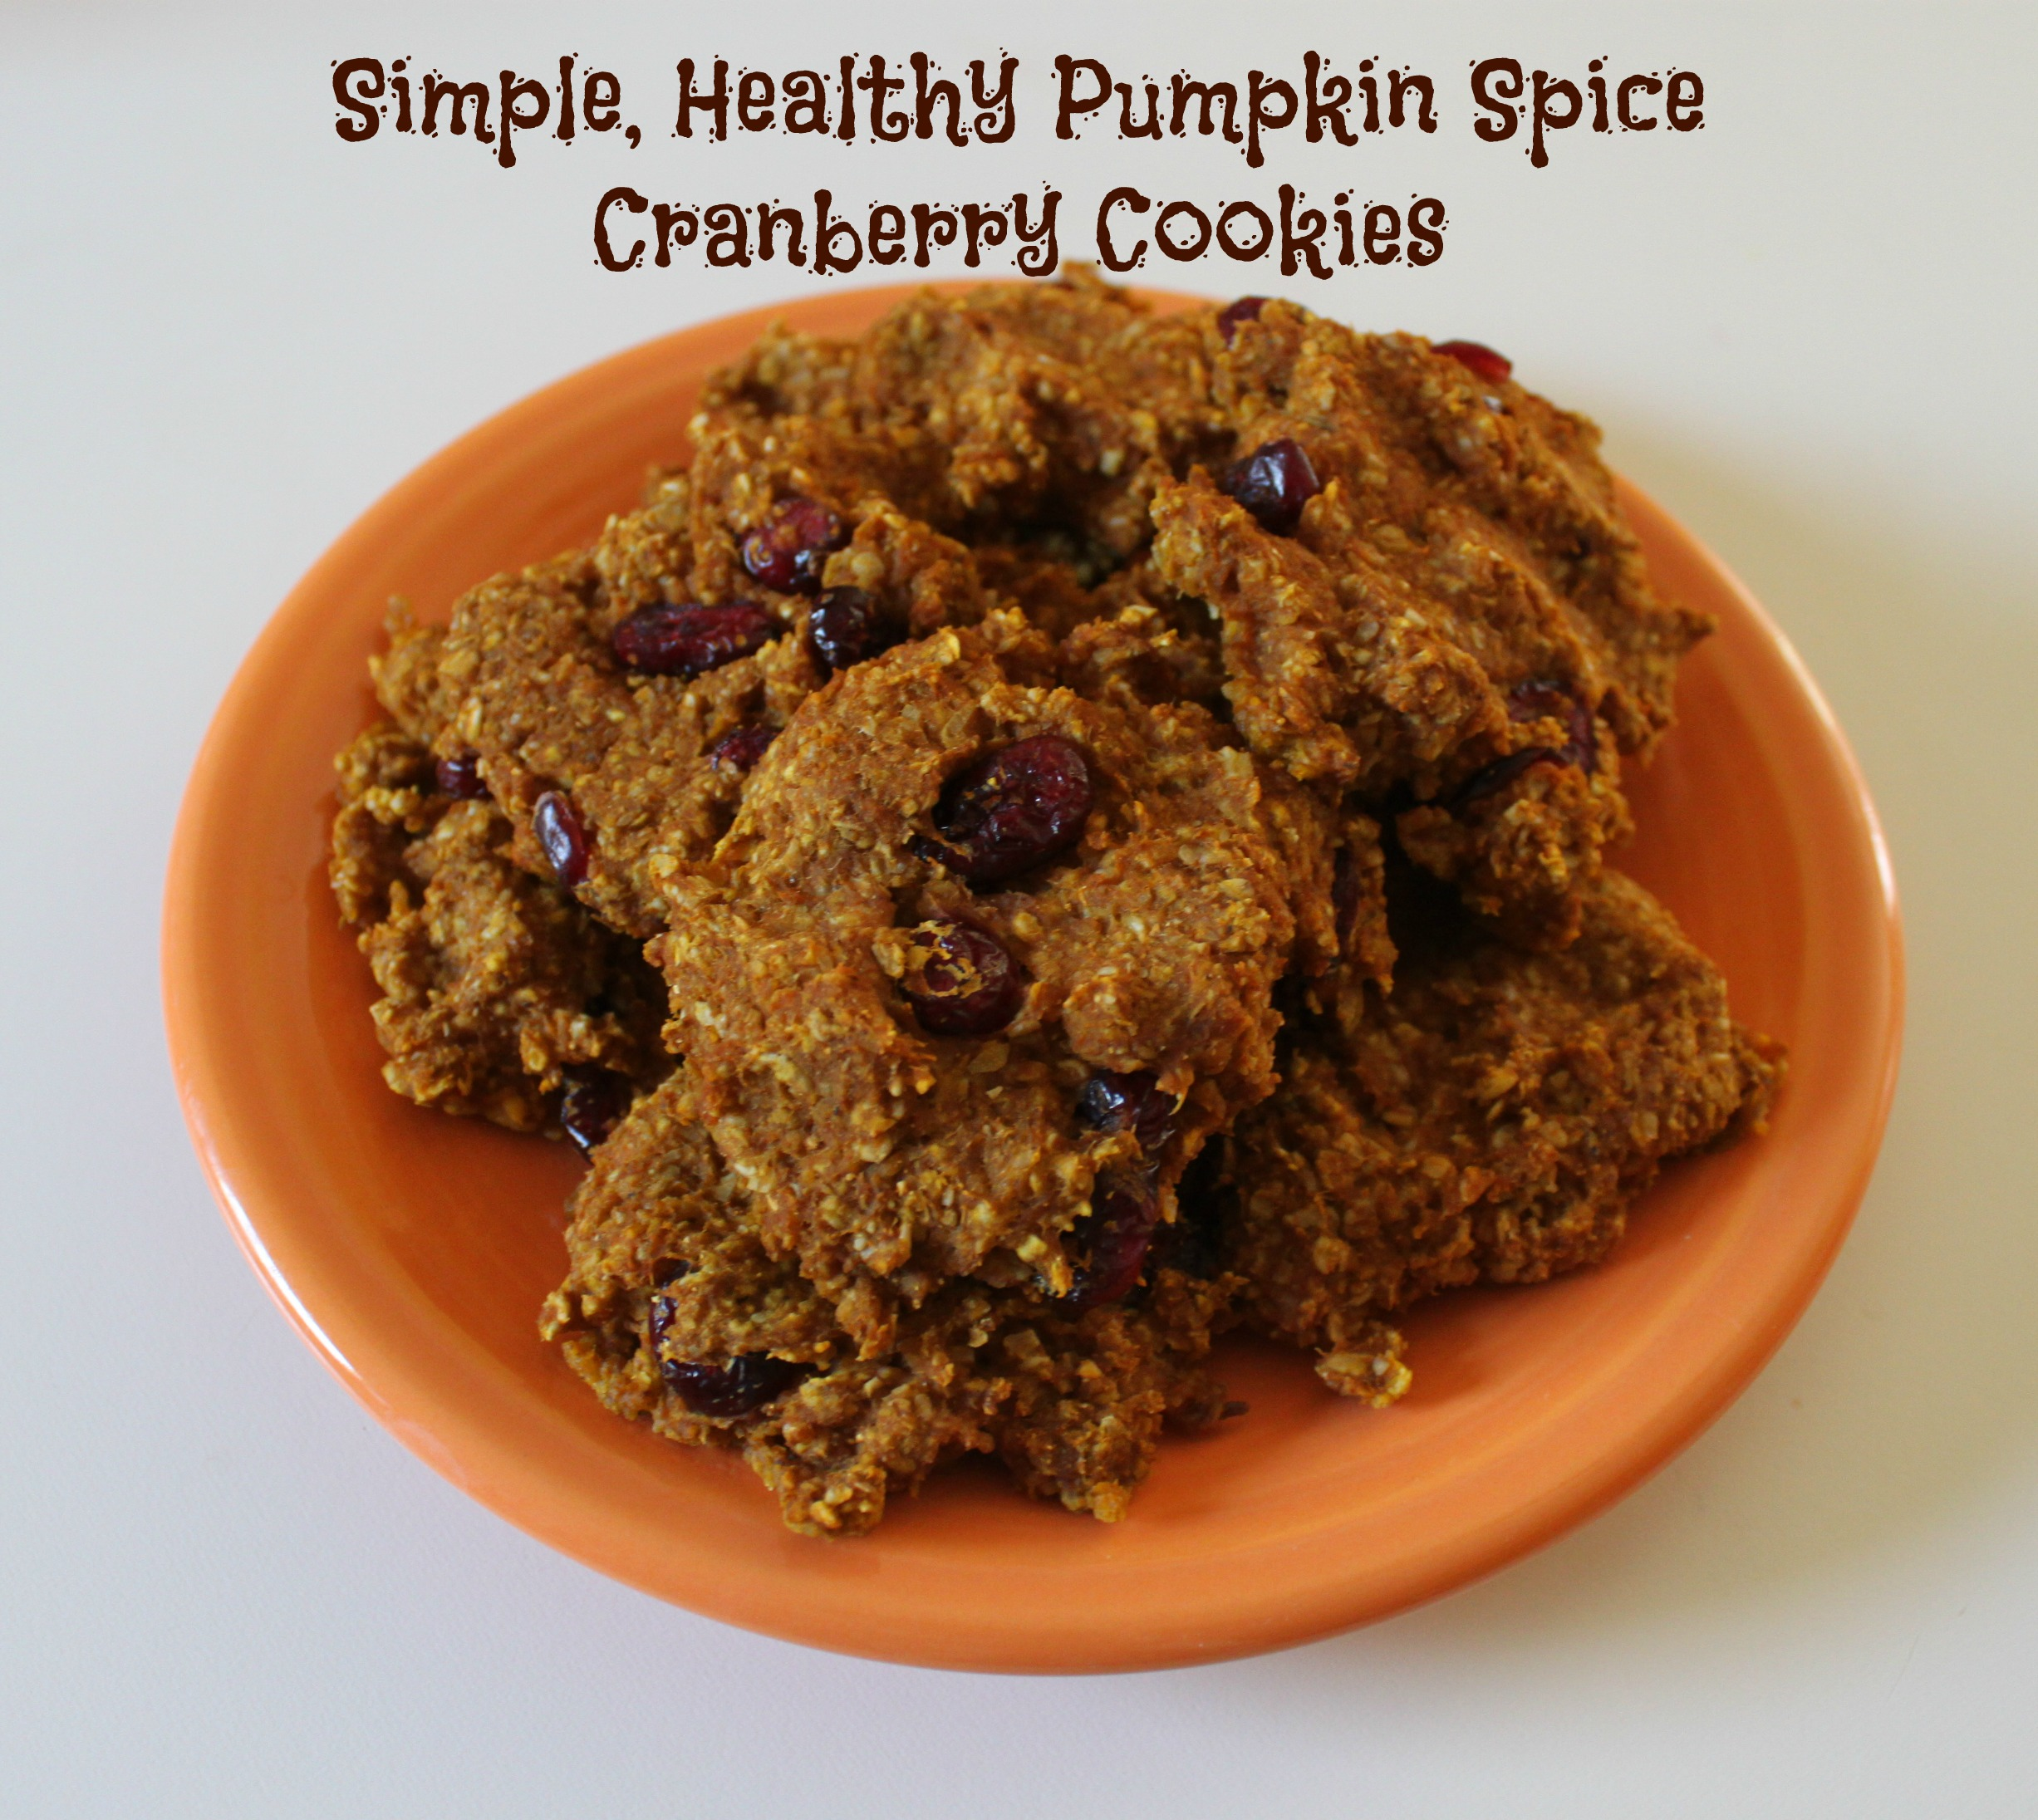 ... pumpkin these healthy pumpkin spice cranberry cookies are perfect